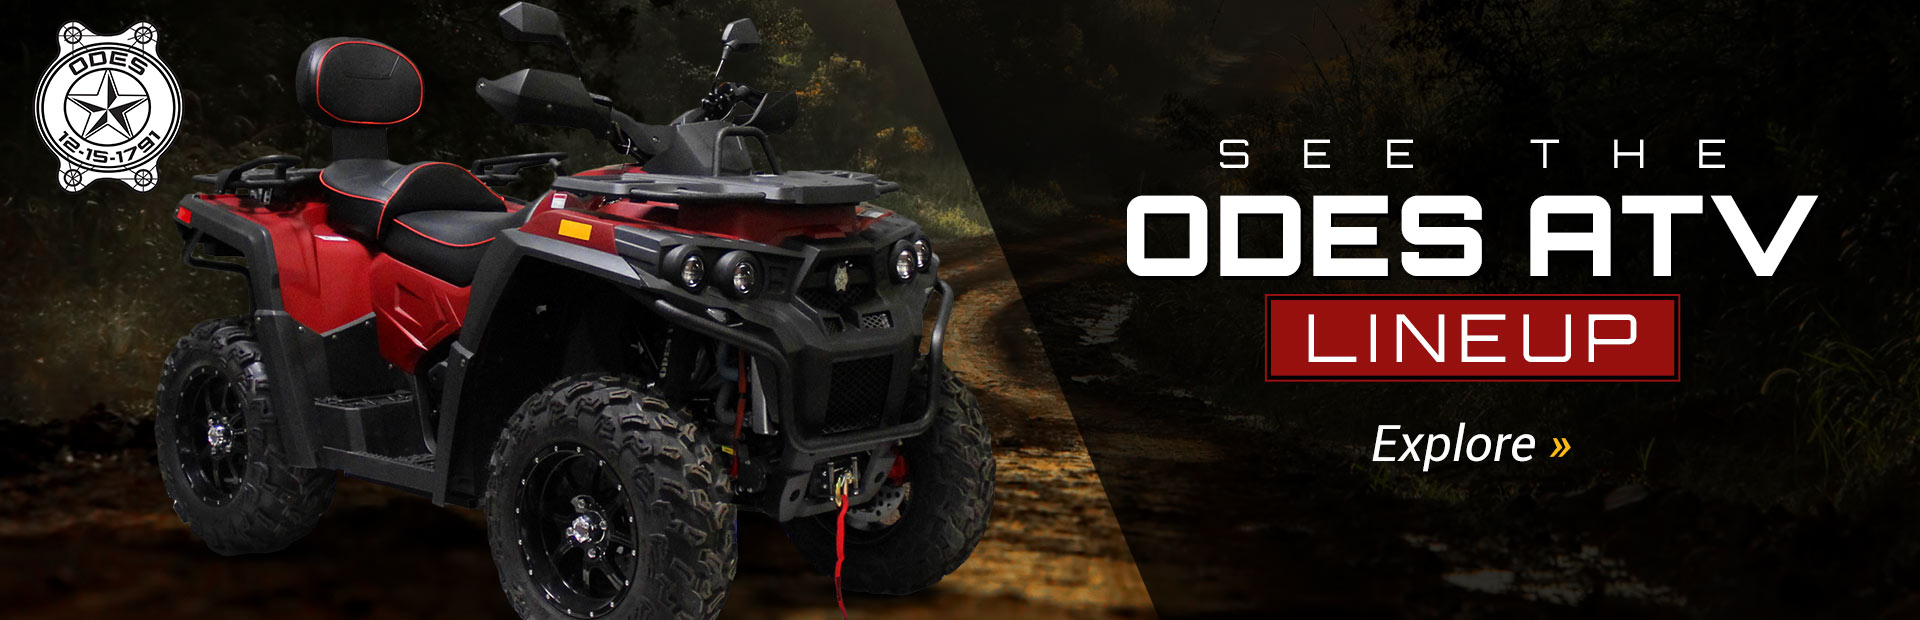 ODES ATV Lineup: Click here to view the models.